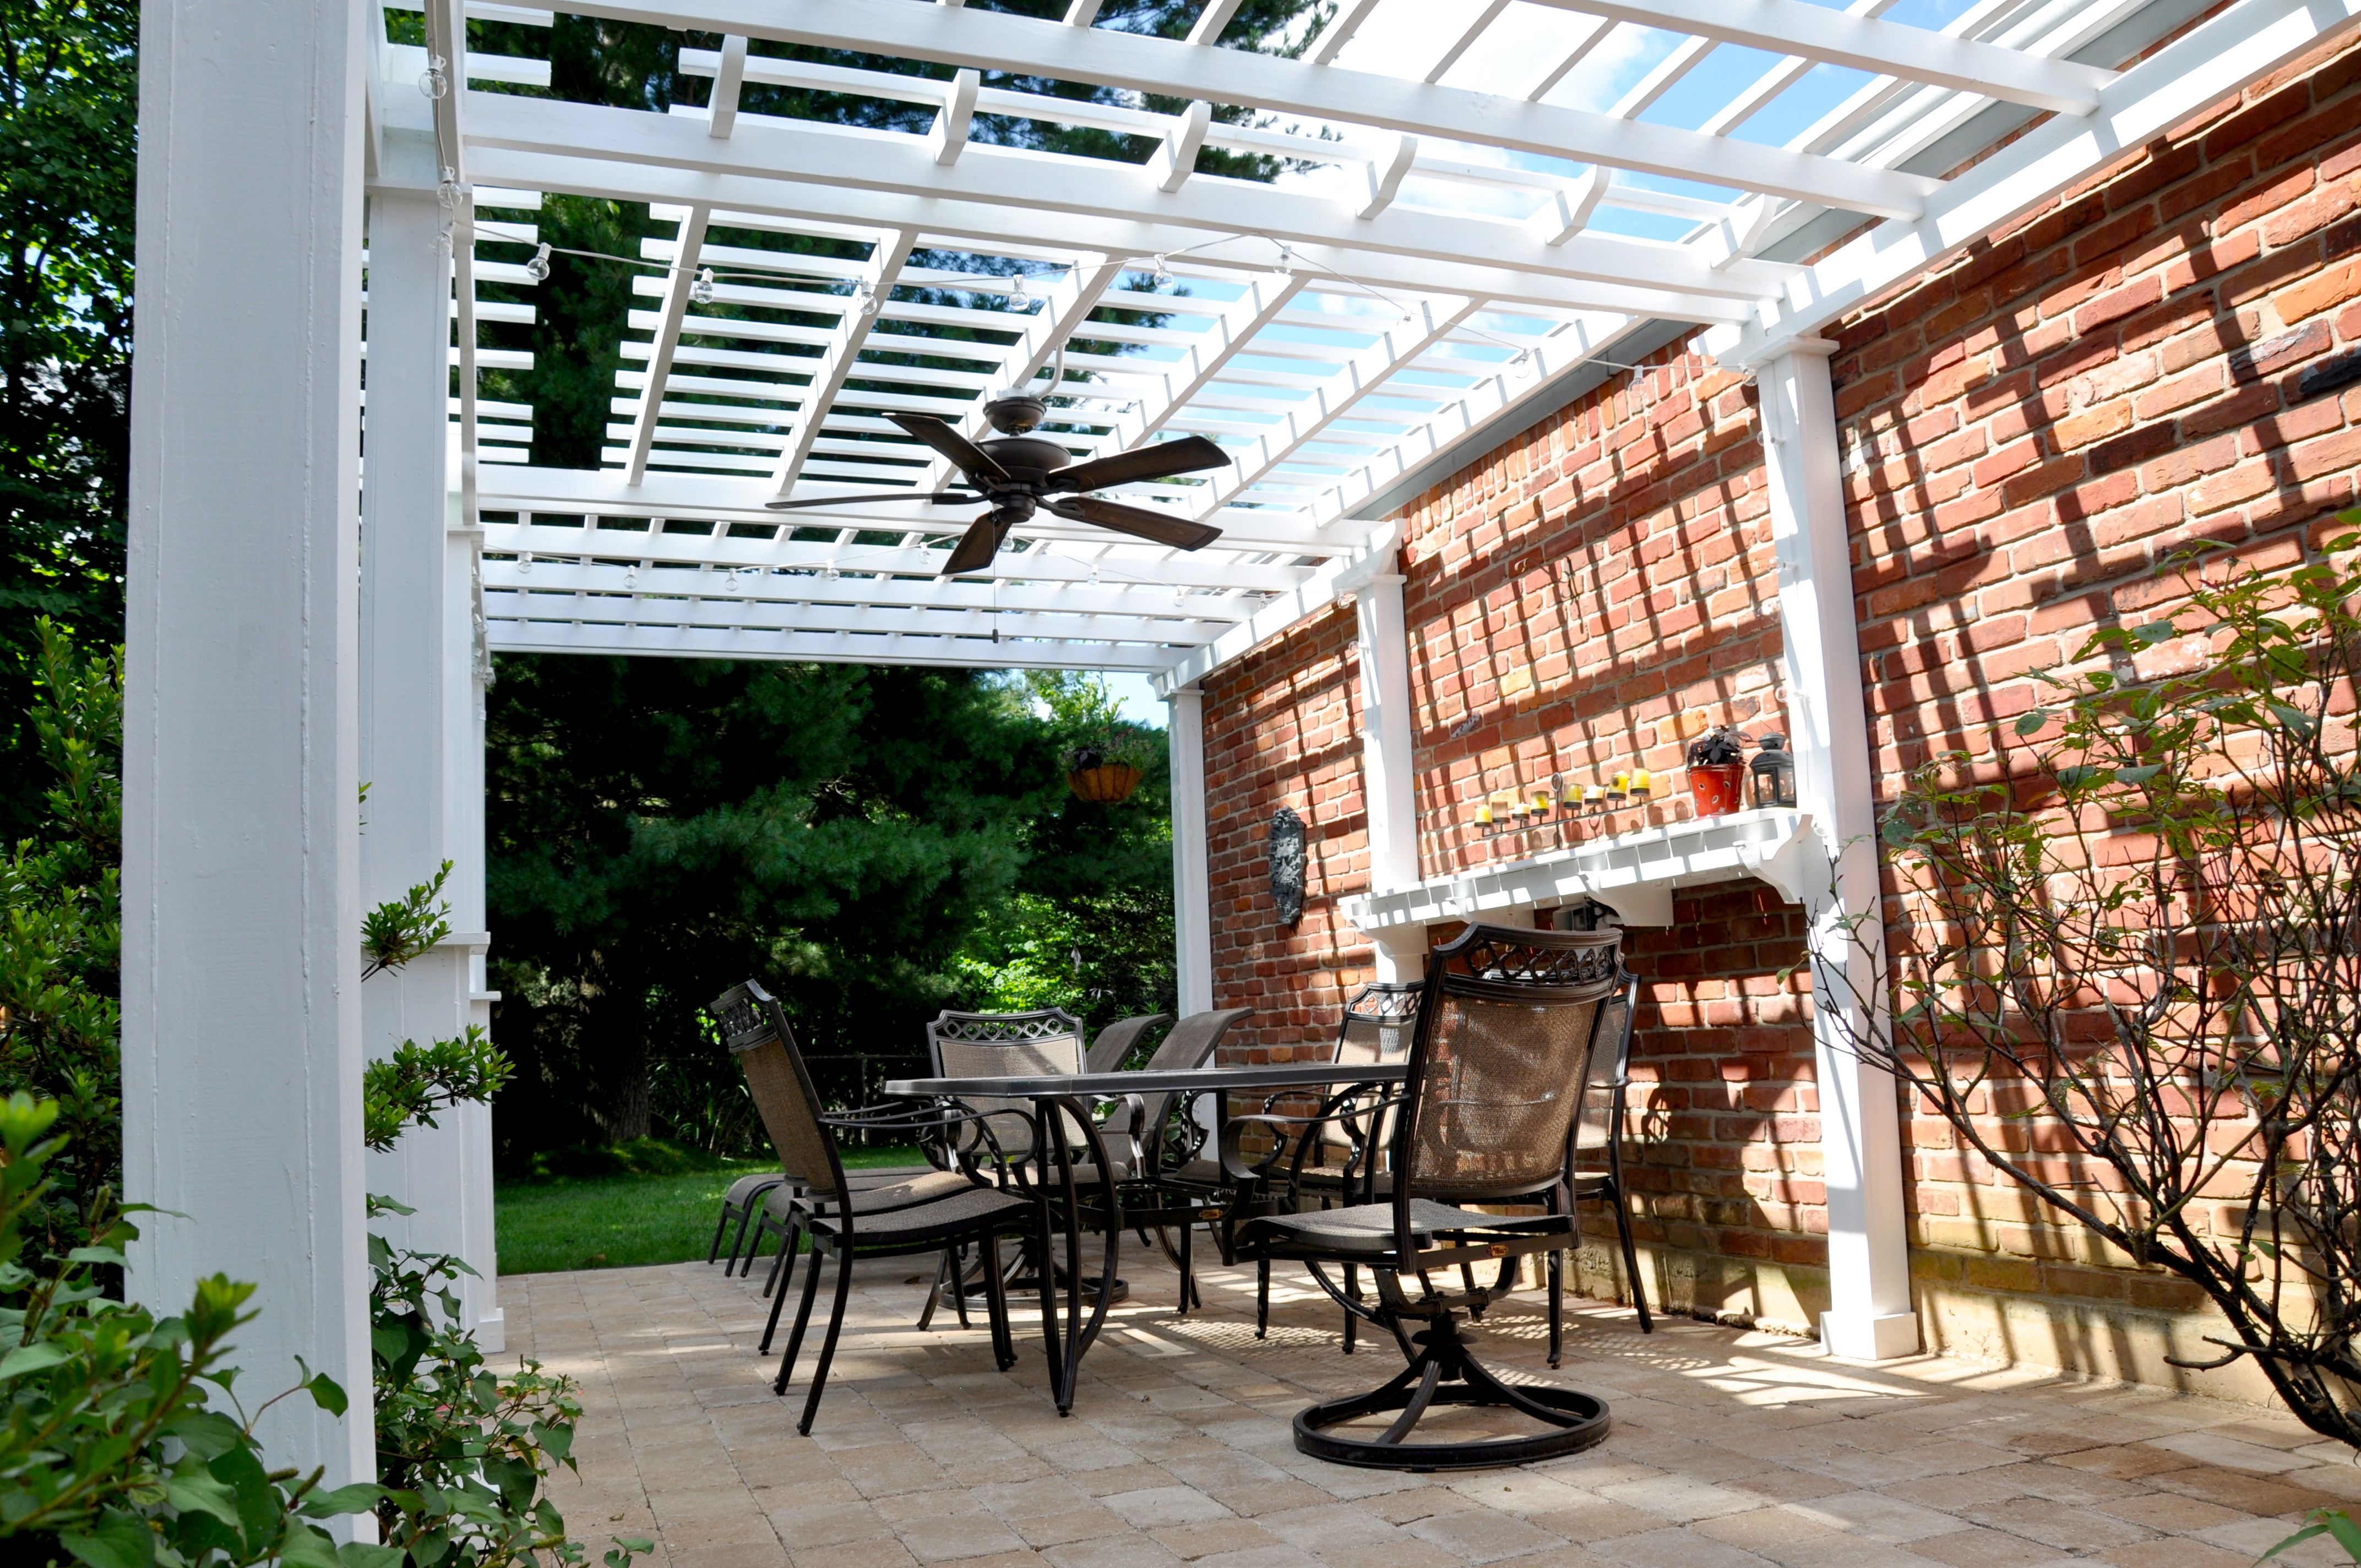 wall articulating mount for patio x outdoor esgntv photo of fans patios com